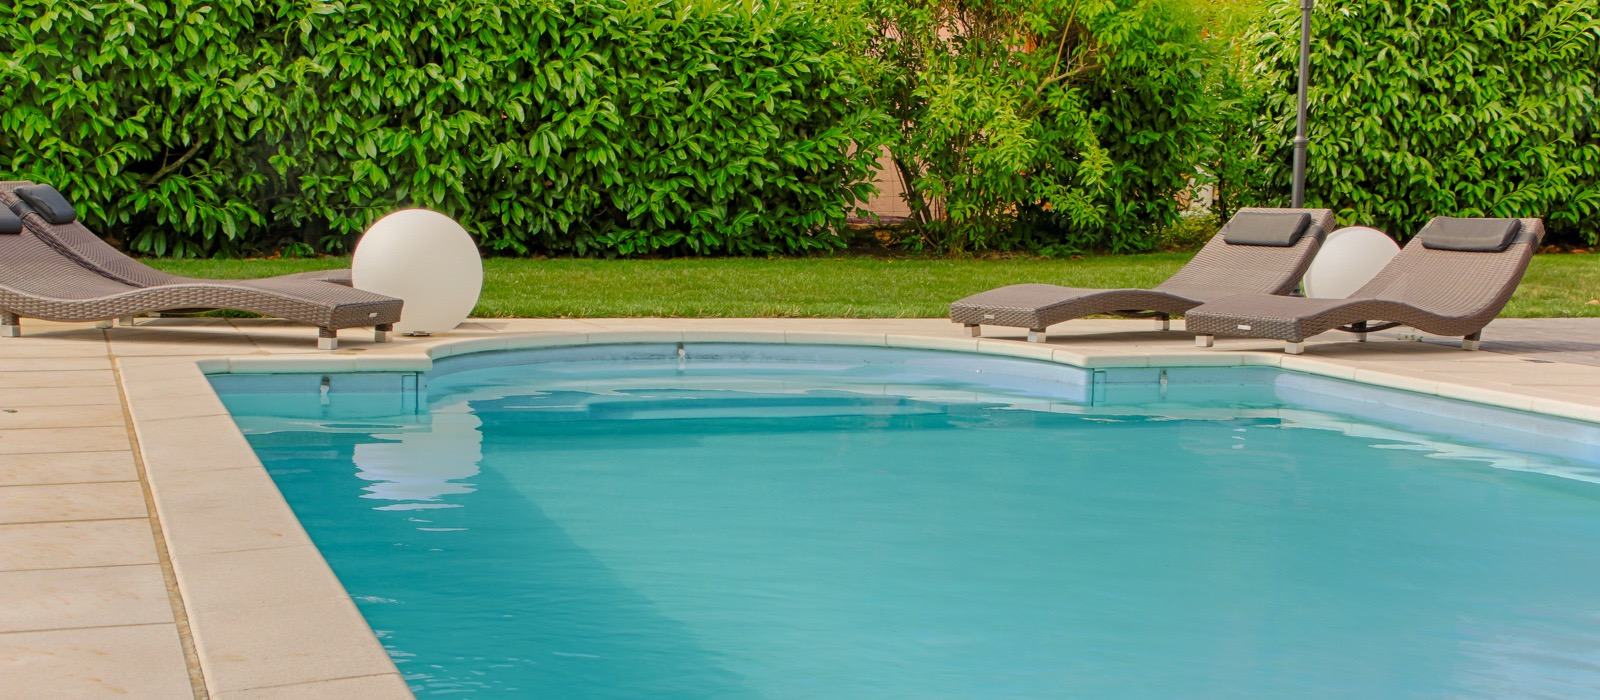 L 39 immobilier annecy en vid o agence immobili re for Piscine seynod